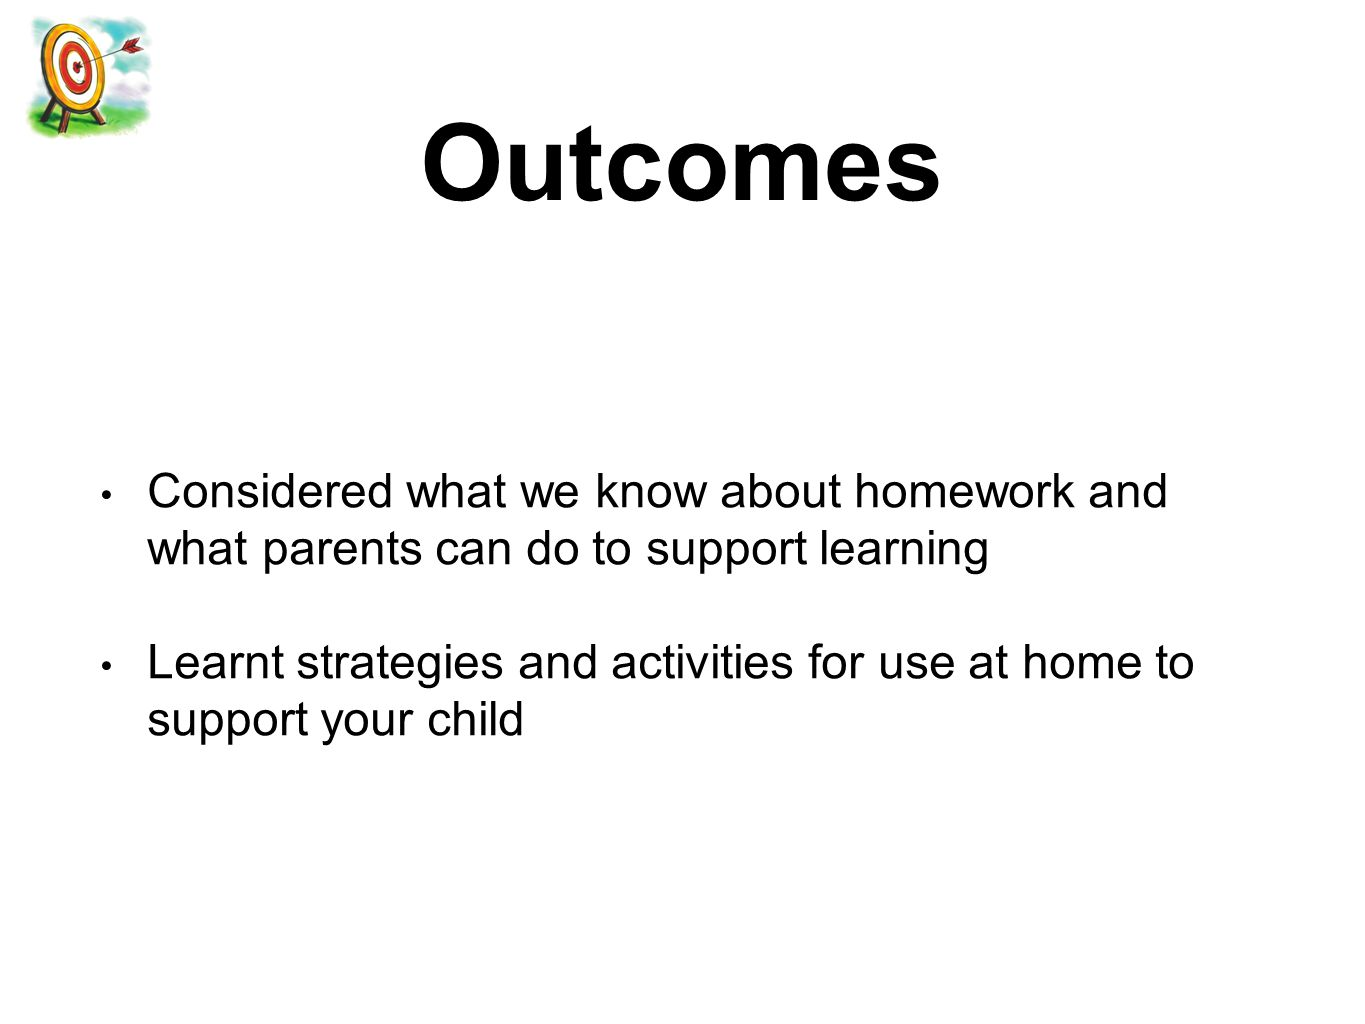 Outcomes Considered what we know about homework and what parents can do to support learning Learnt strategies and activities for use at home to support your child